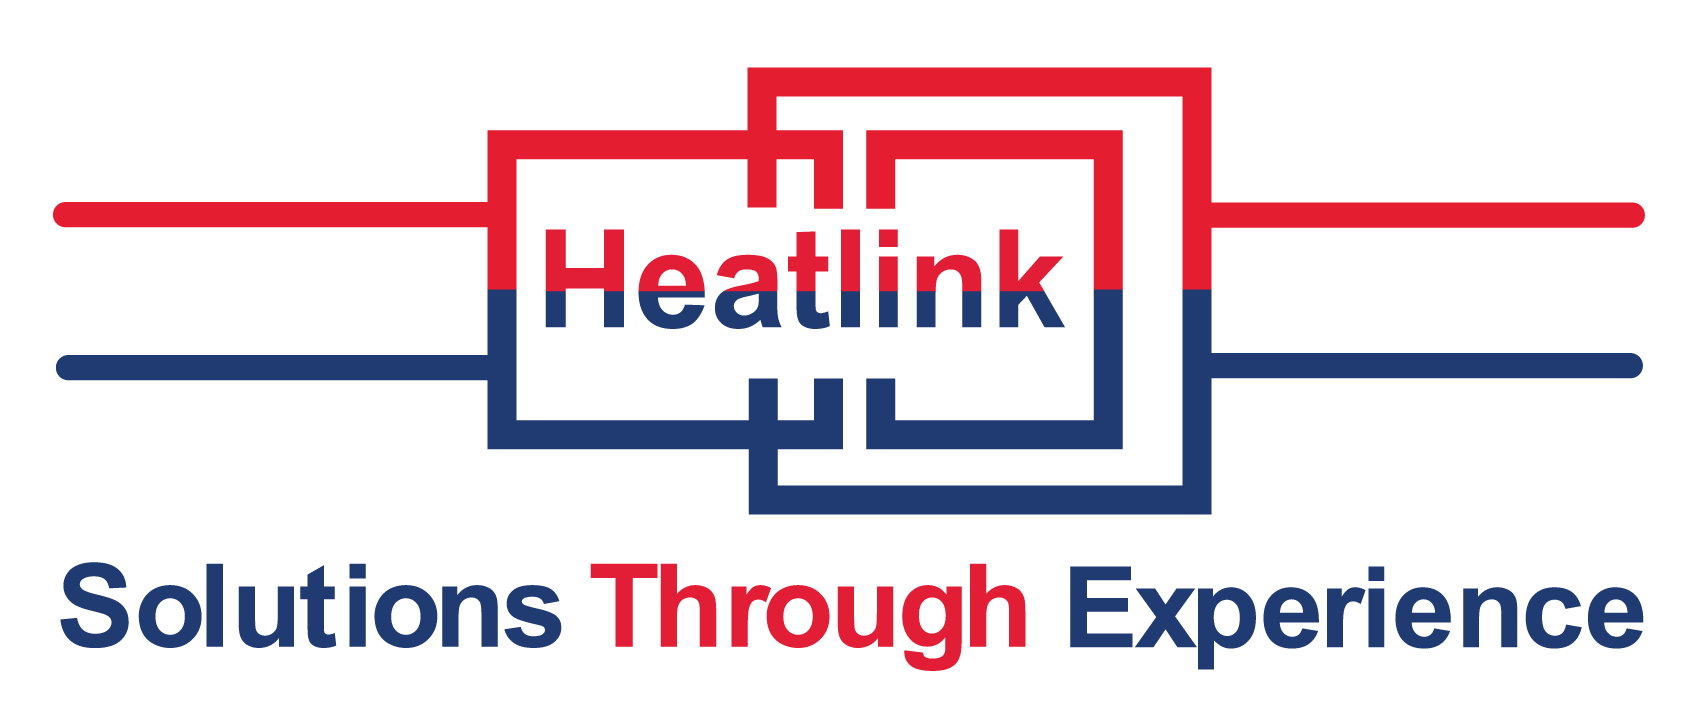 HEATLINK LOGO - HIU Commissioning